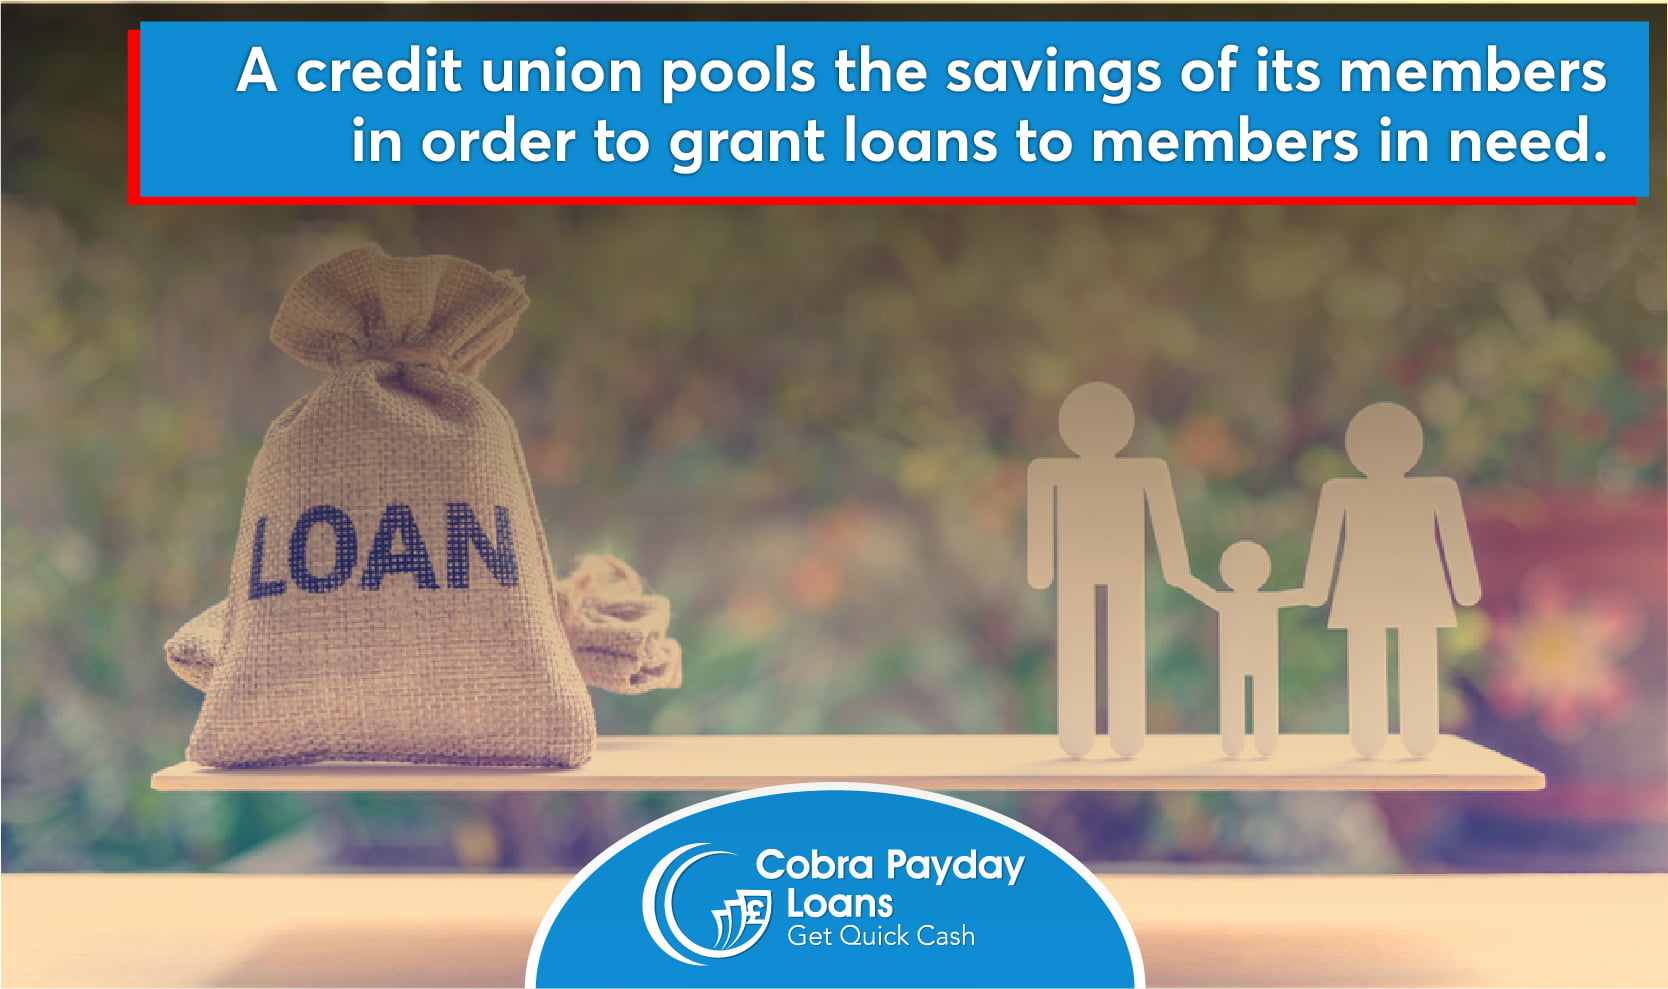 A credit union pools the savings of its members in order to grant loans to members in need